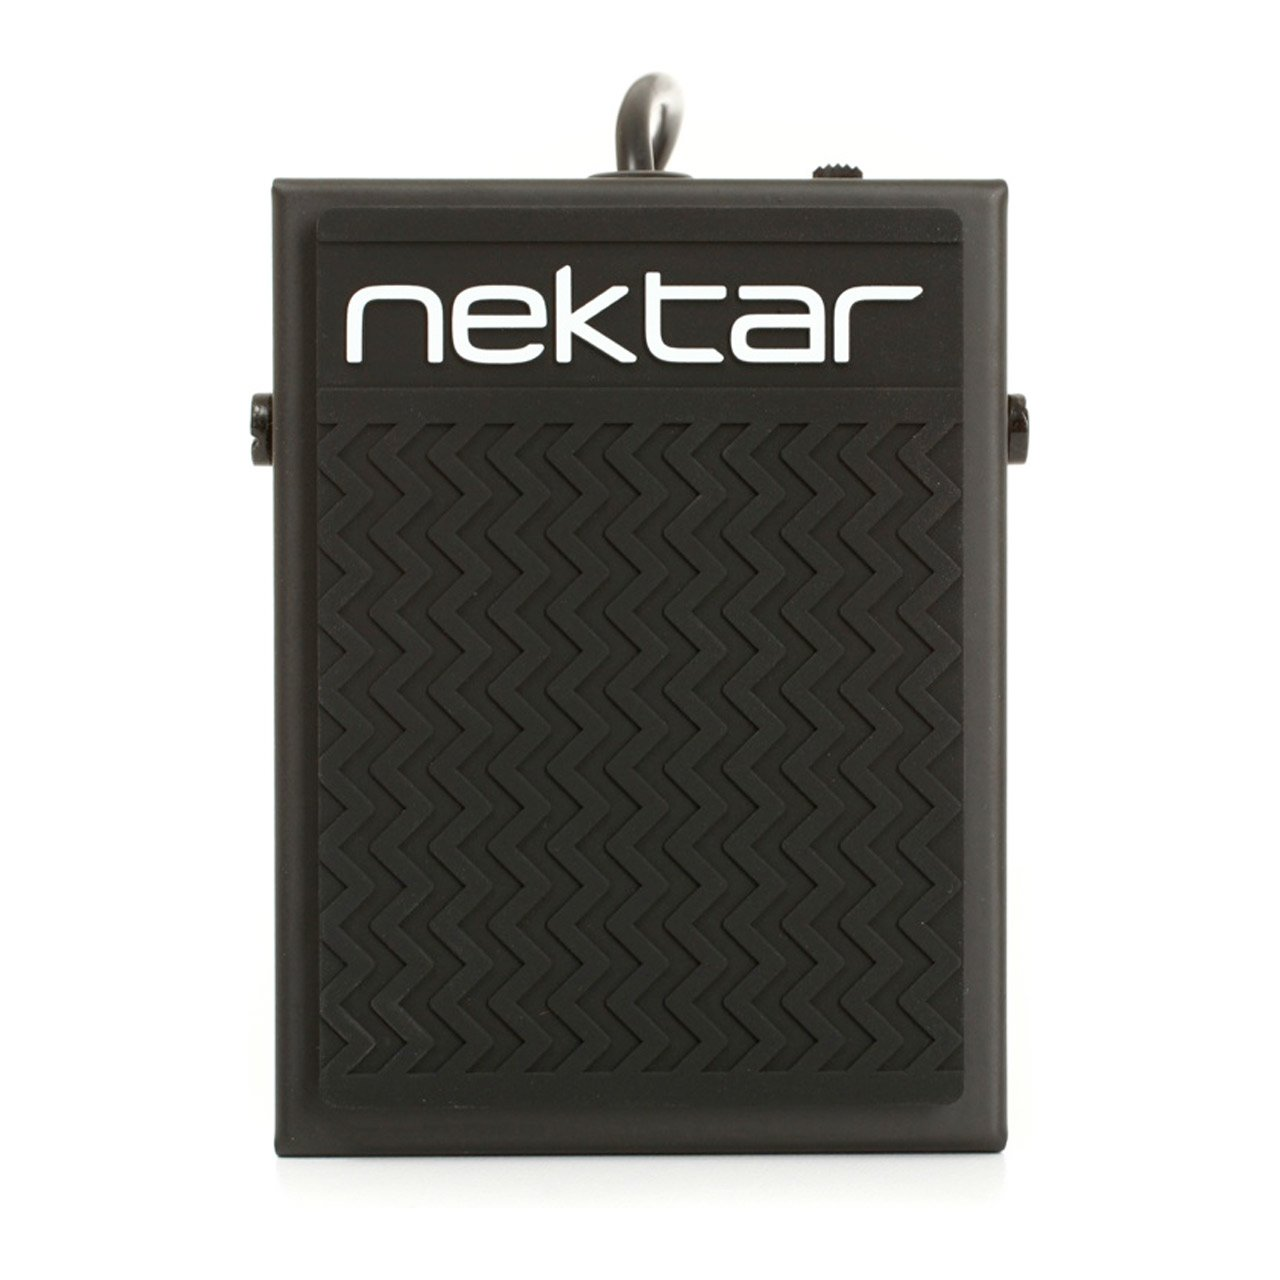 Keyboard Accessories - Nektar NP-1 Universal Foot Switch Pedal